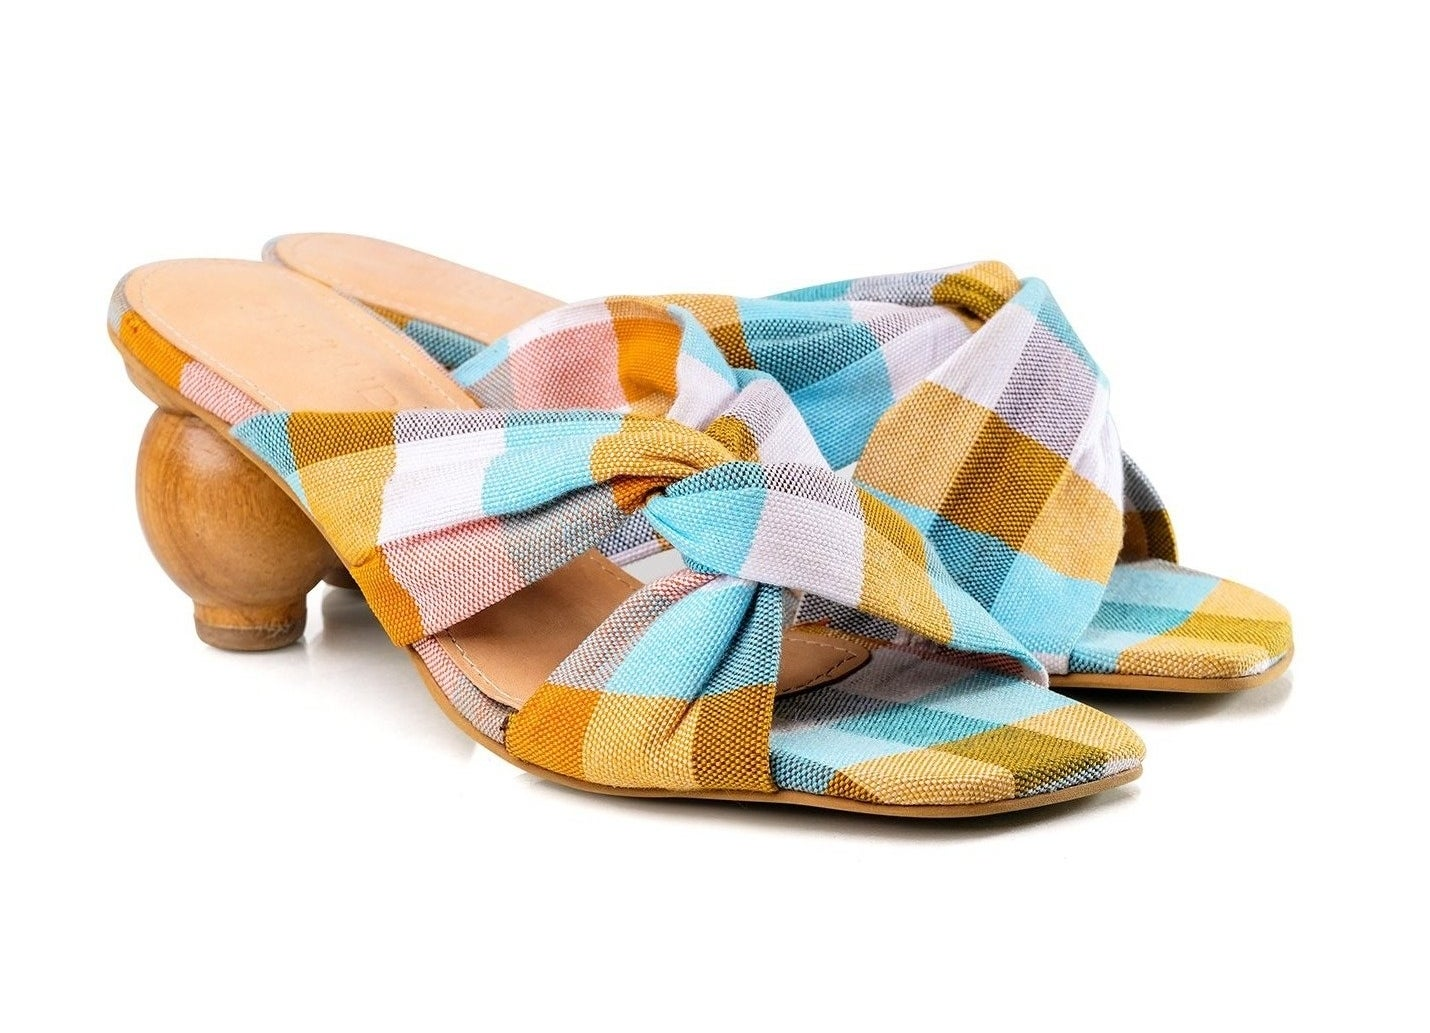 the mules with circular heel and yellow, blue, and white plaid cross-top mules